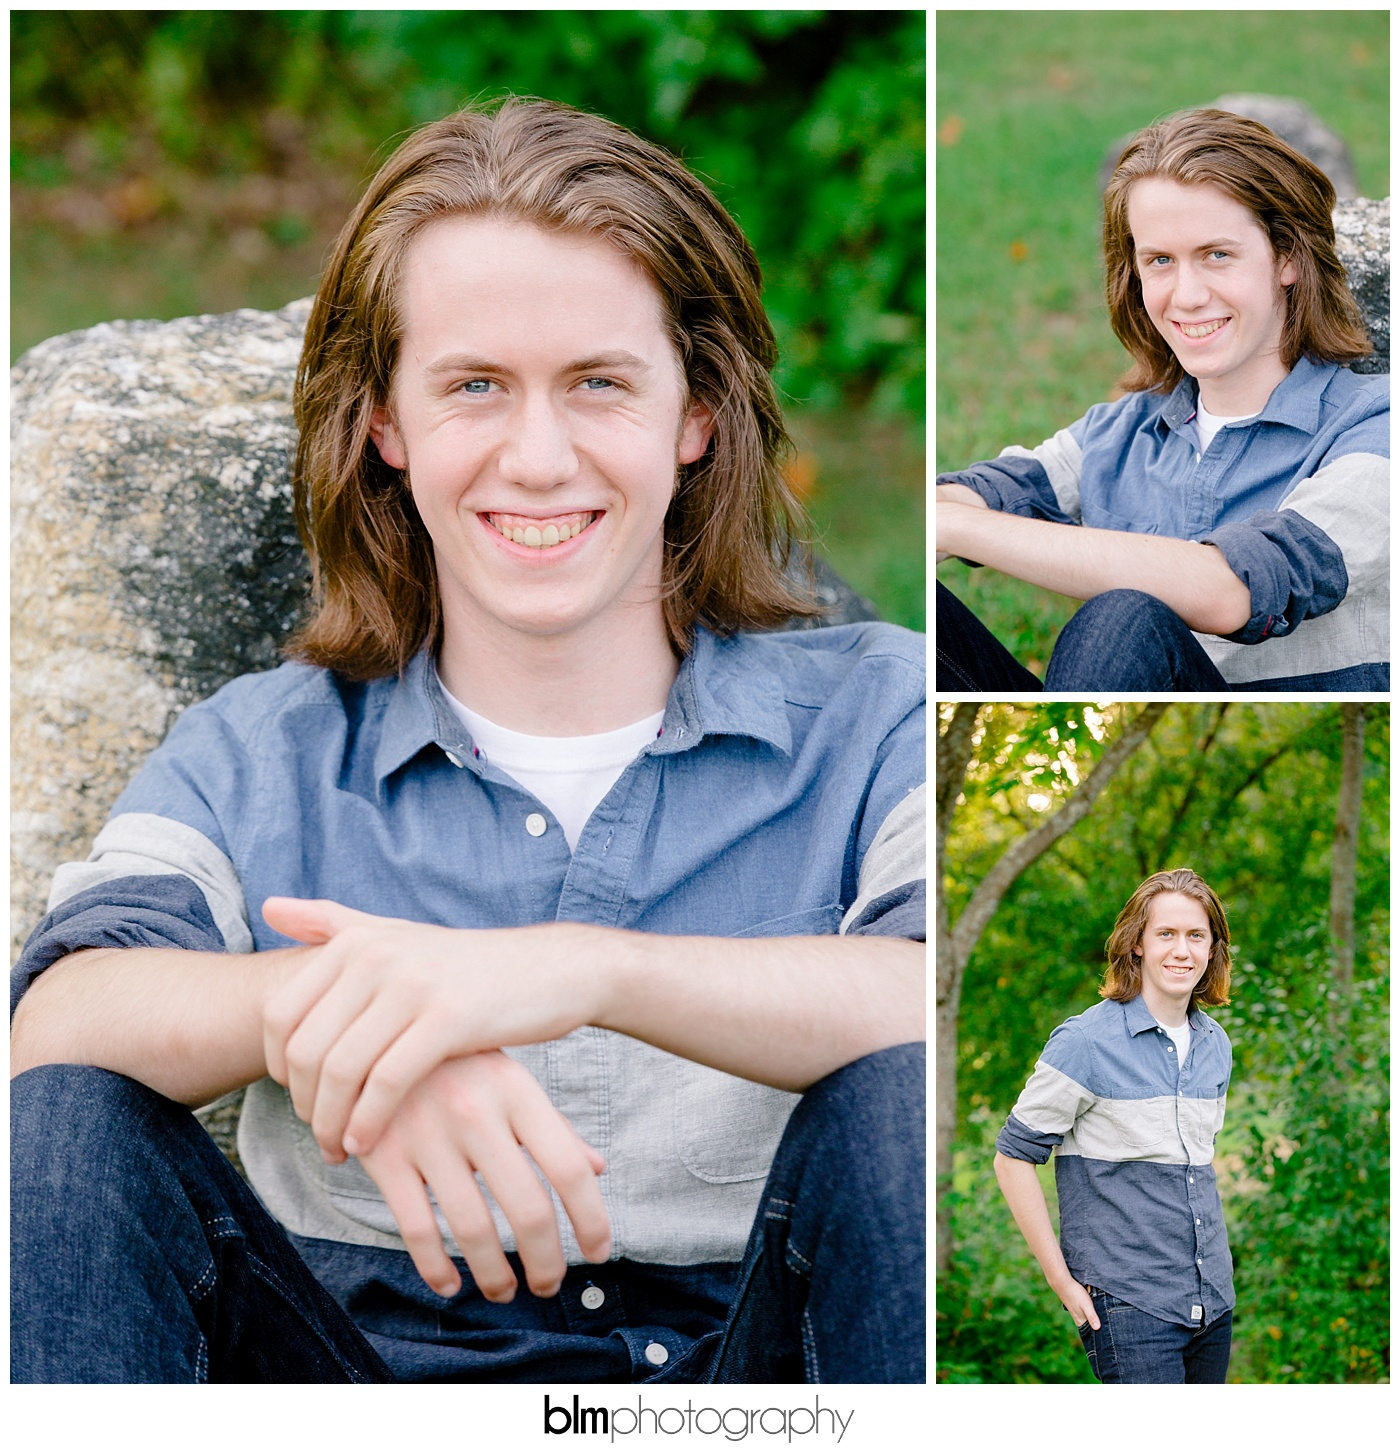 Ryan-Hoiriis_Senior-Portraits_092116-8364.jpg